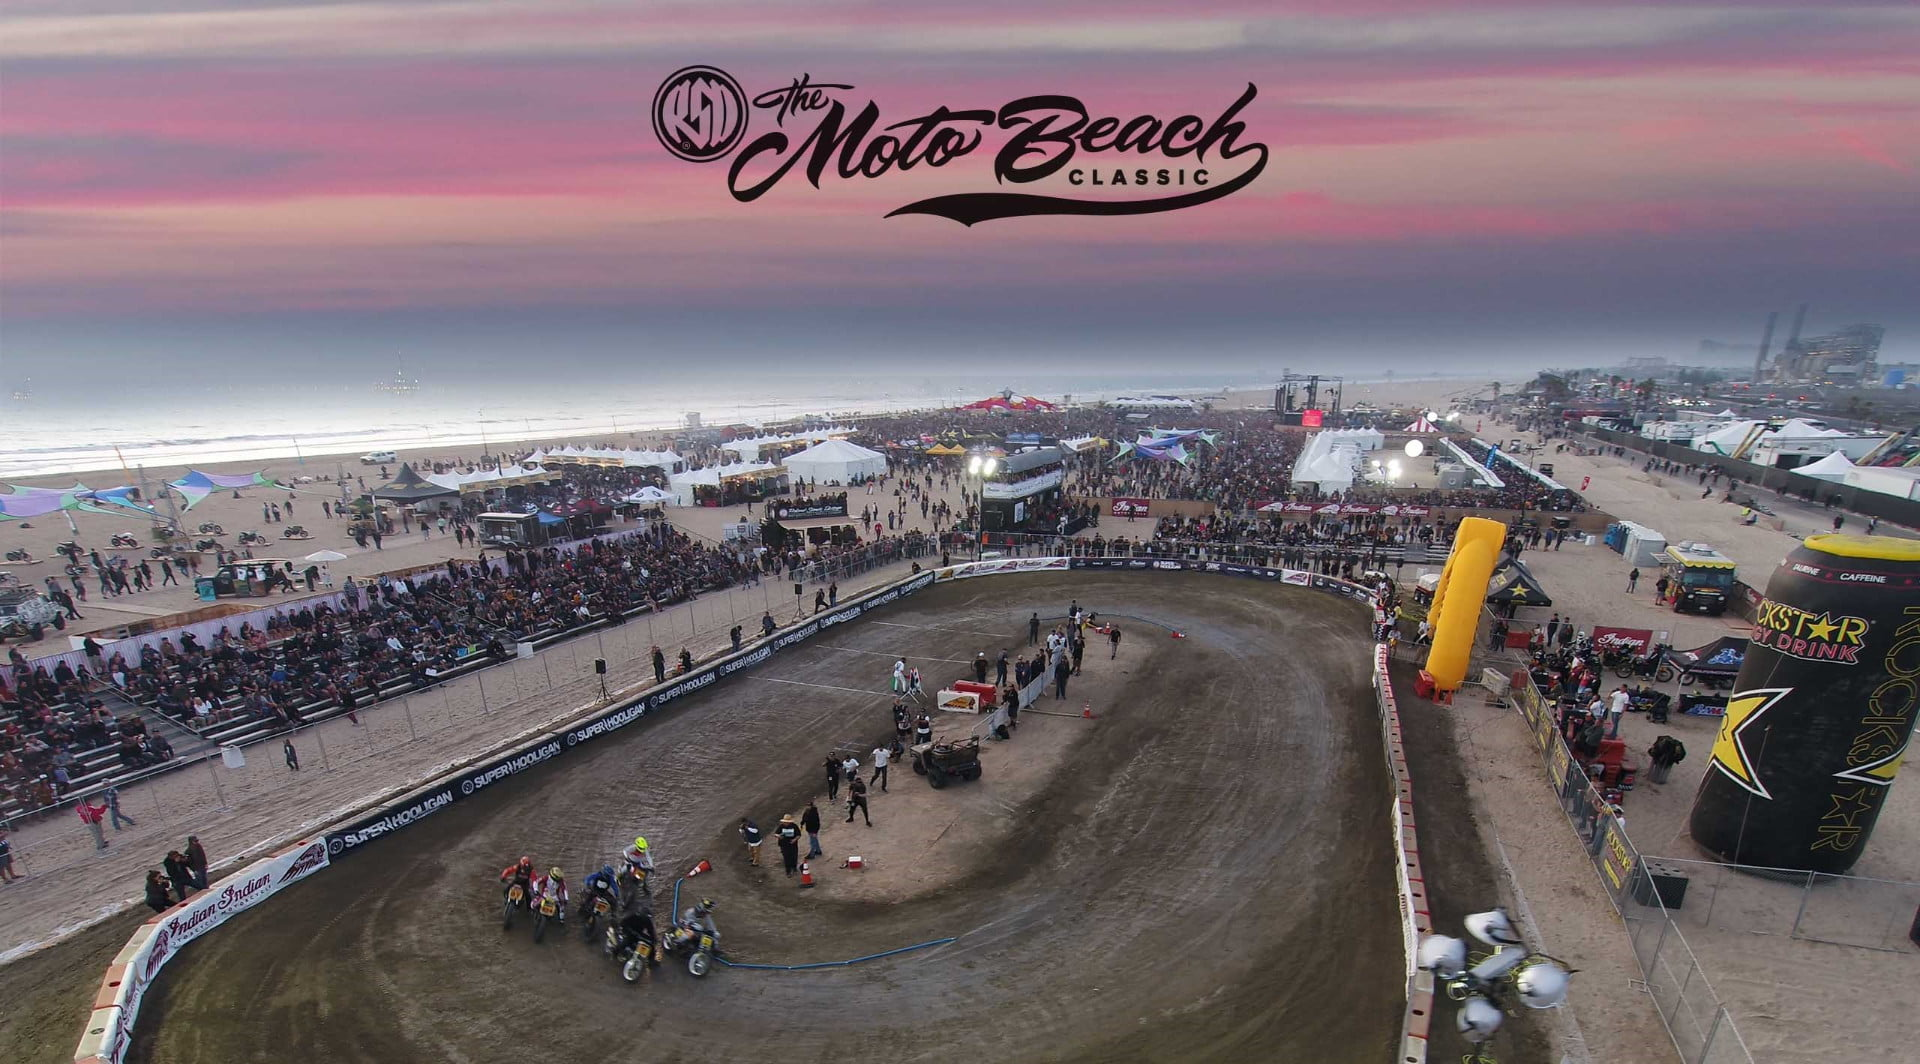 Roland Sands Moto Beach Classic prevails with sound, surf, and Hooligan races